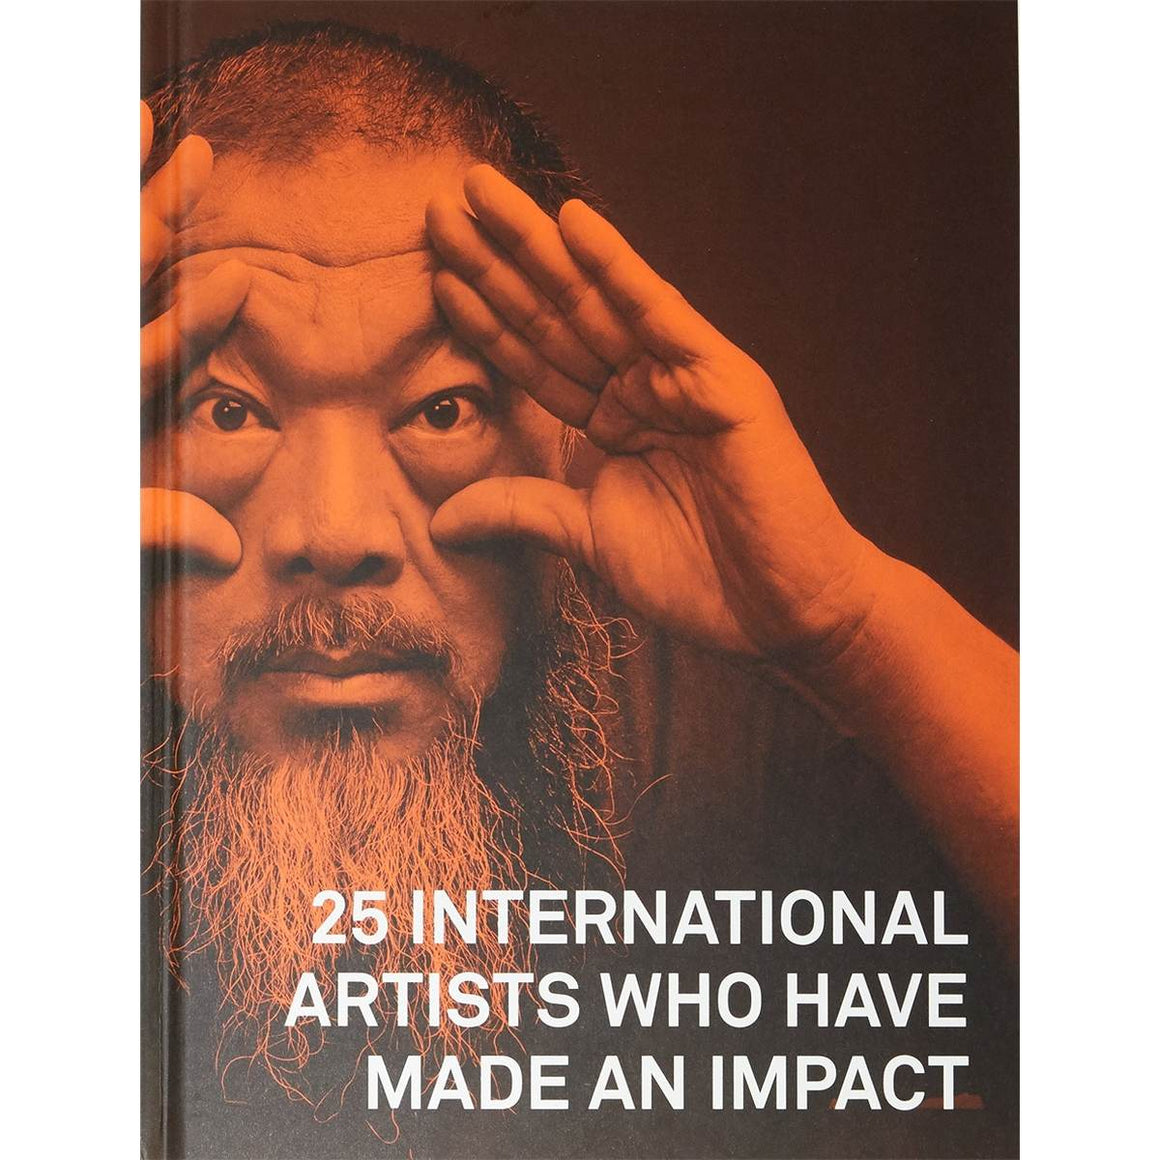 A book cover featuring a red toned photographic portrait of artist Ai Weiwei. He poses with his hands held up to his eyes as if holding a pair of imaginary binoculars.